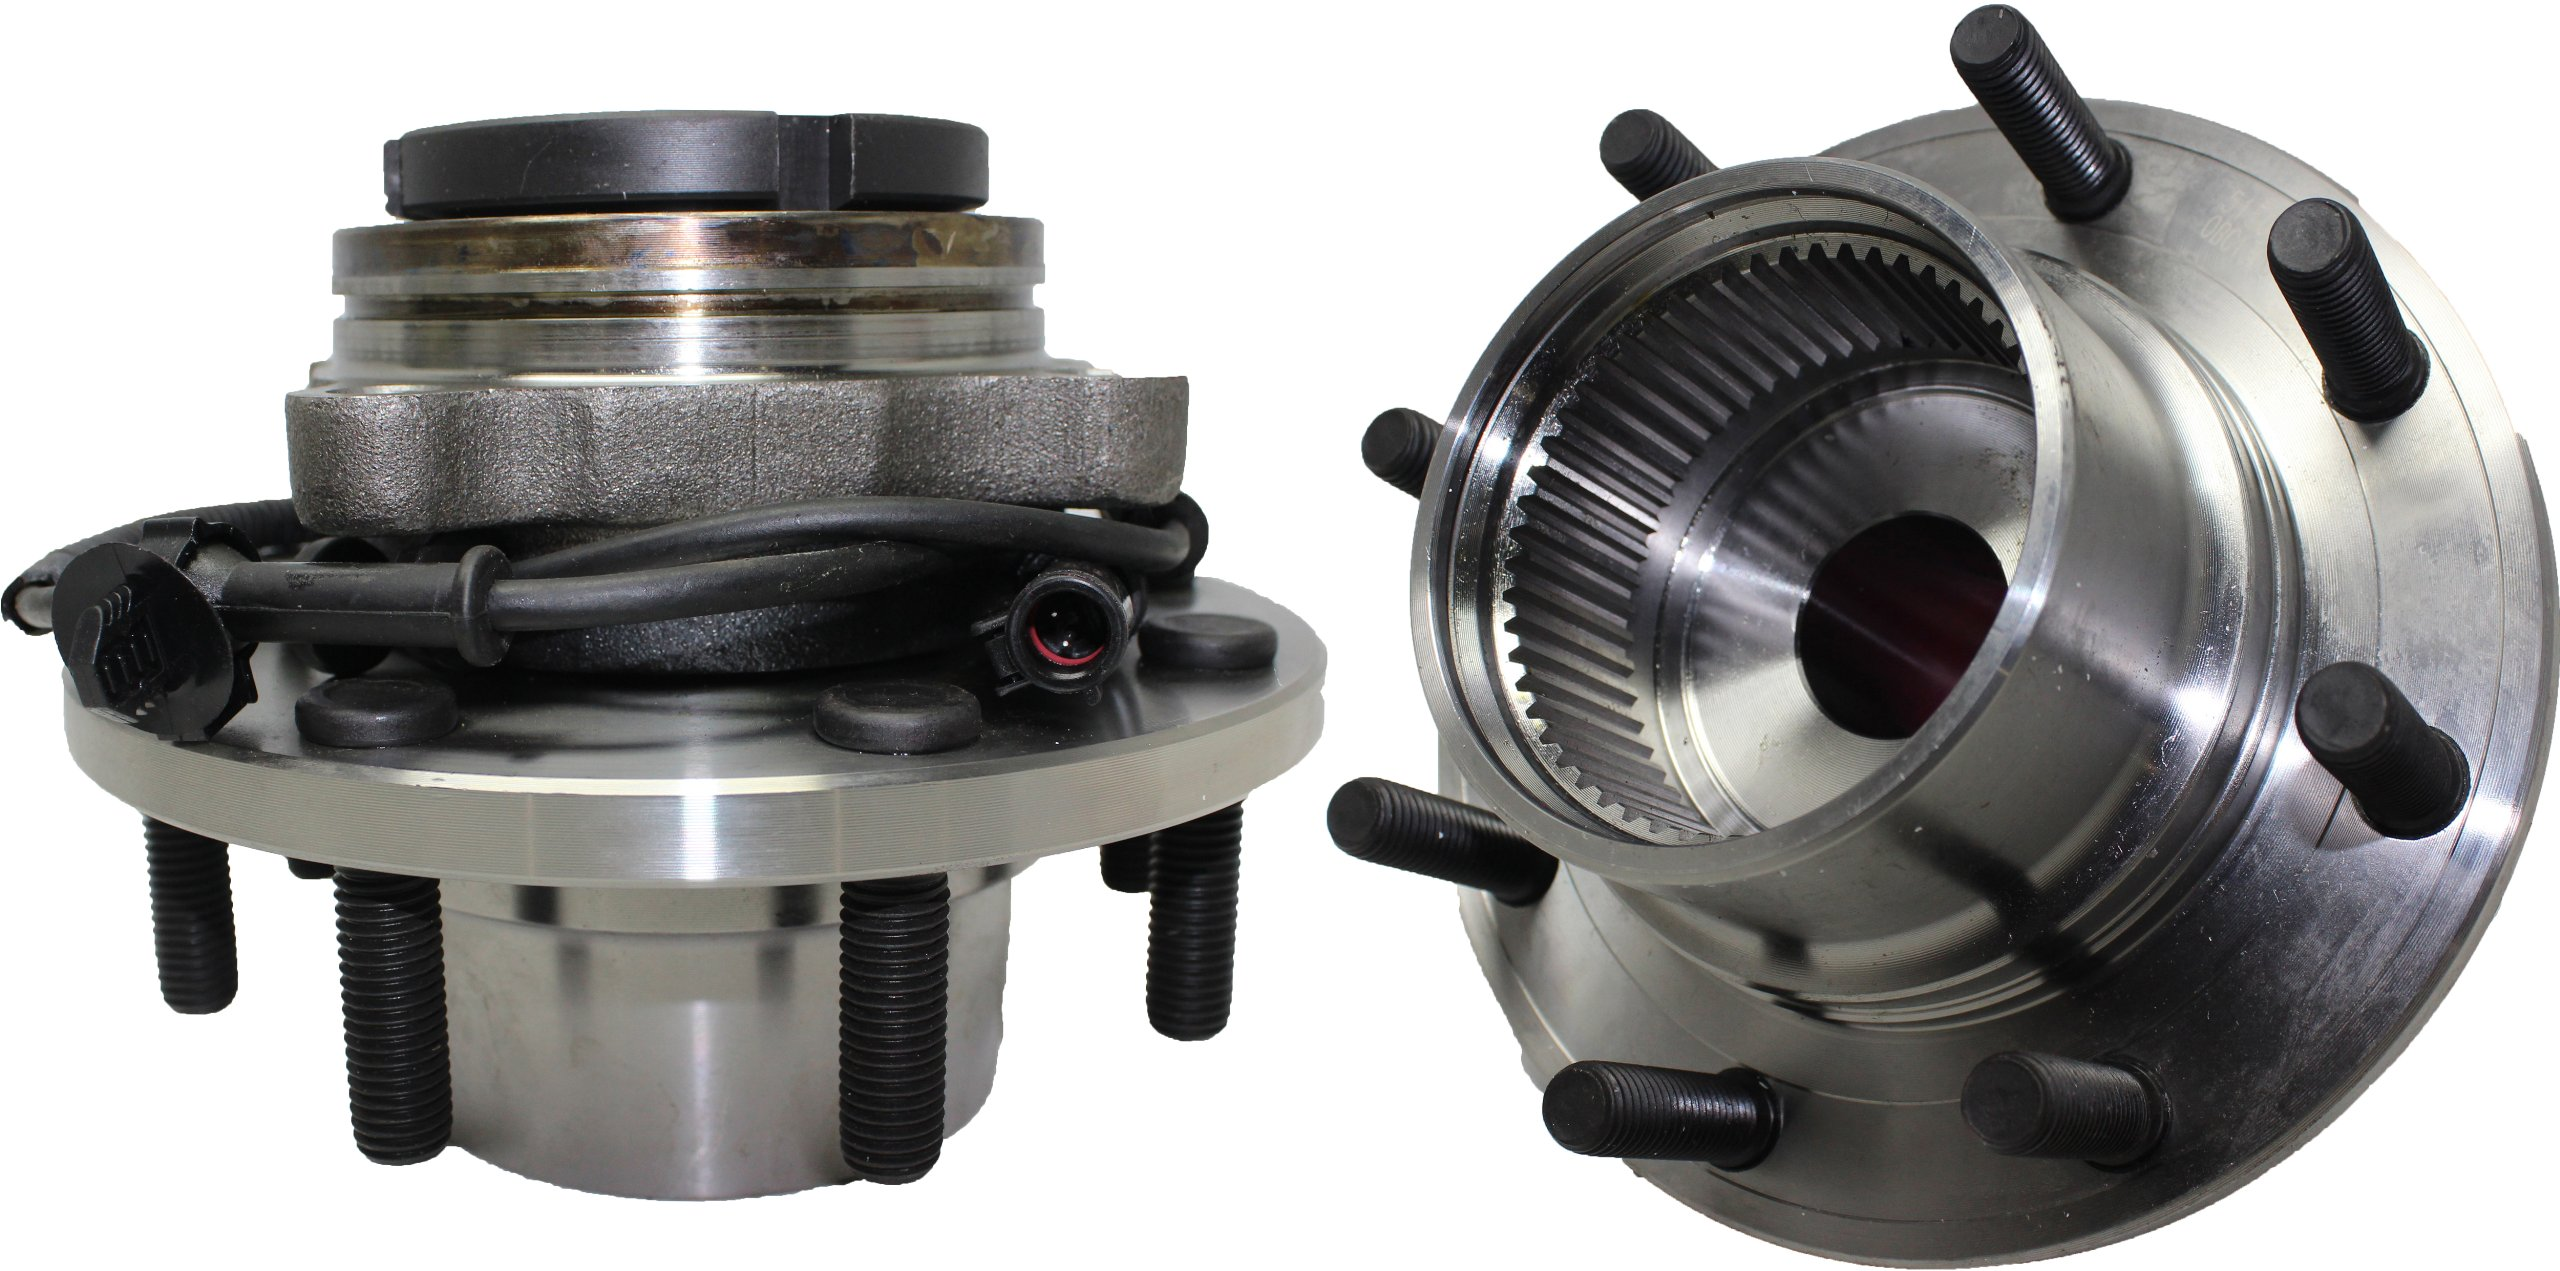 2 New Front Ford Super Duty F-350 , F-250, Excursion ABS 4x4 ABS Wheel Hub and Bearing Assembly 8 lugs, SRW COARSE THREADS, FROM 3/22/99, (PAIR) by Detroit Axle